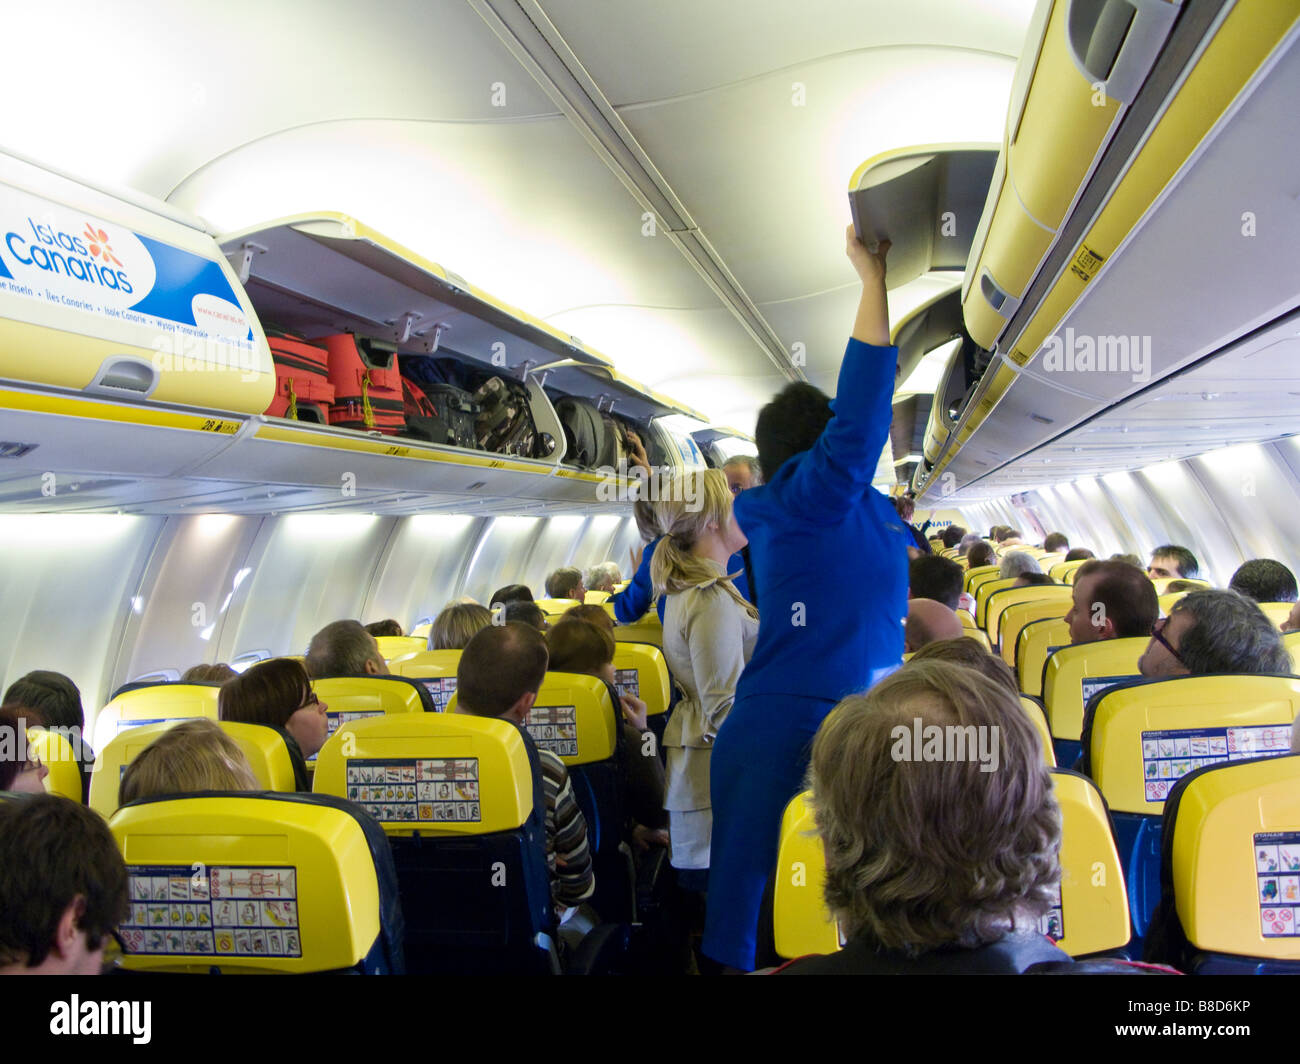 Salon of airplane with passengers ready for take off. Editorial use only. - Stock Image